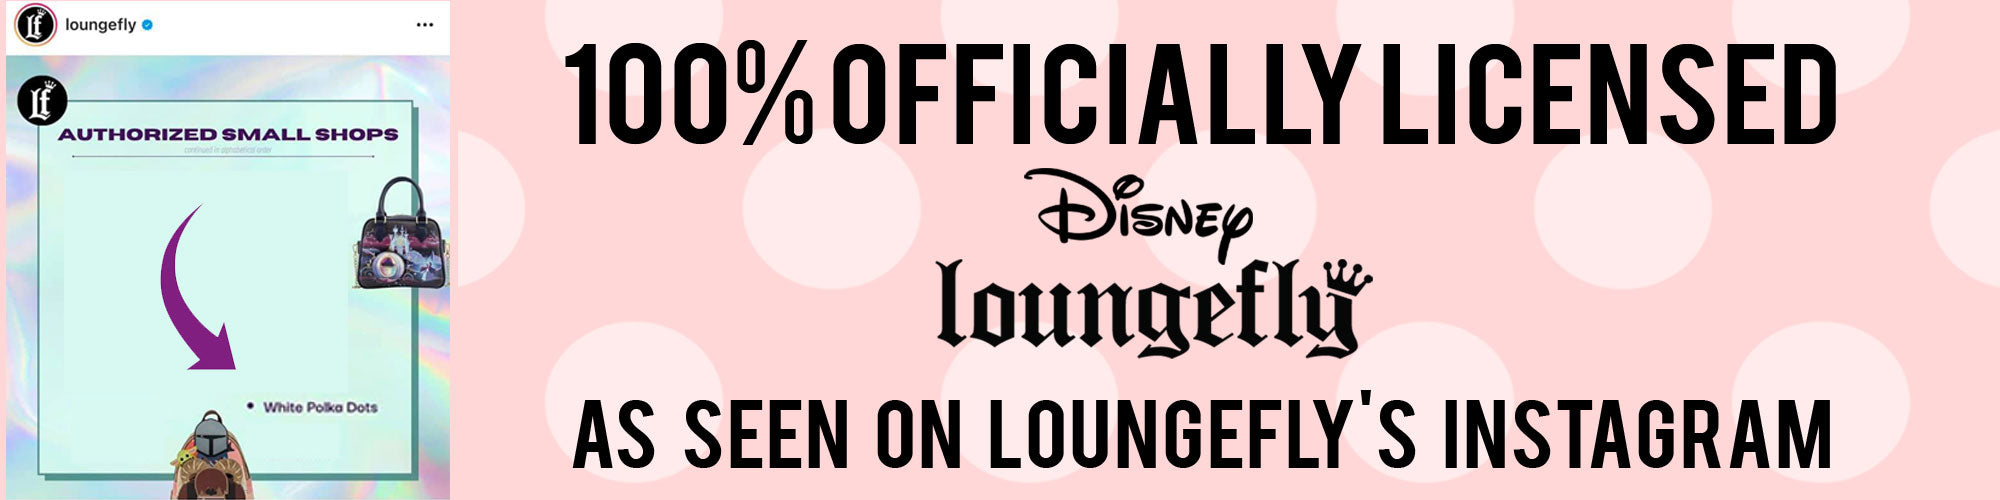 Loungefly Official Retailer